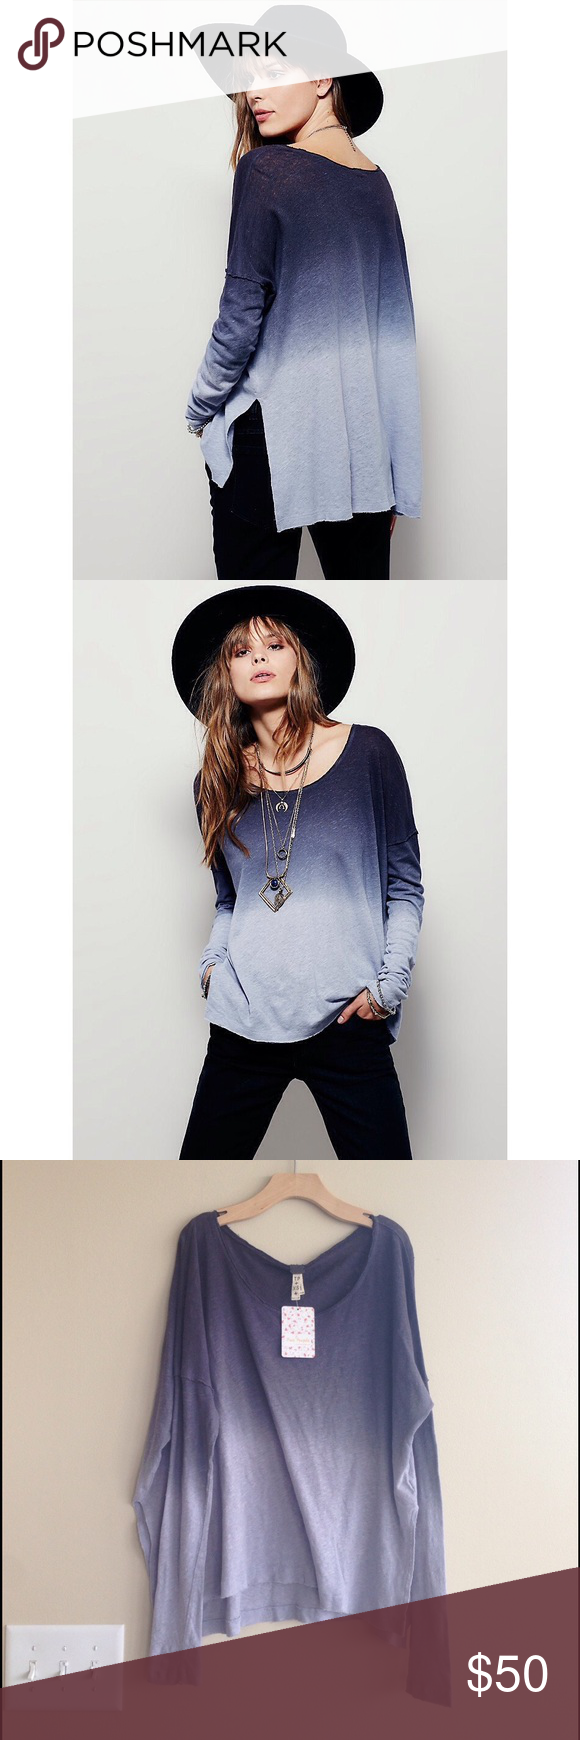 NWT! Free People Starry Night Drop Shoulder Top XS NWT!! Free People Starry Night Drop Shoulder Top. Size XS. Split hem. Color is Lavender/Gray. Perfect Addition to your fall wardrobe! Free People Tops Tees - Long Sleeve